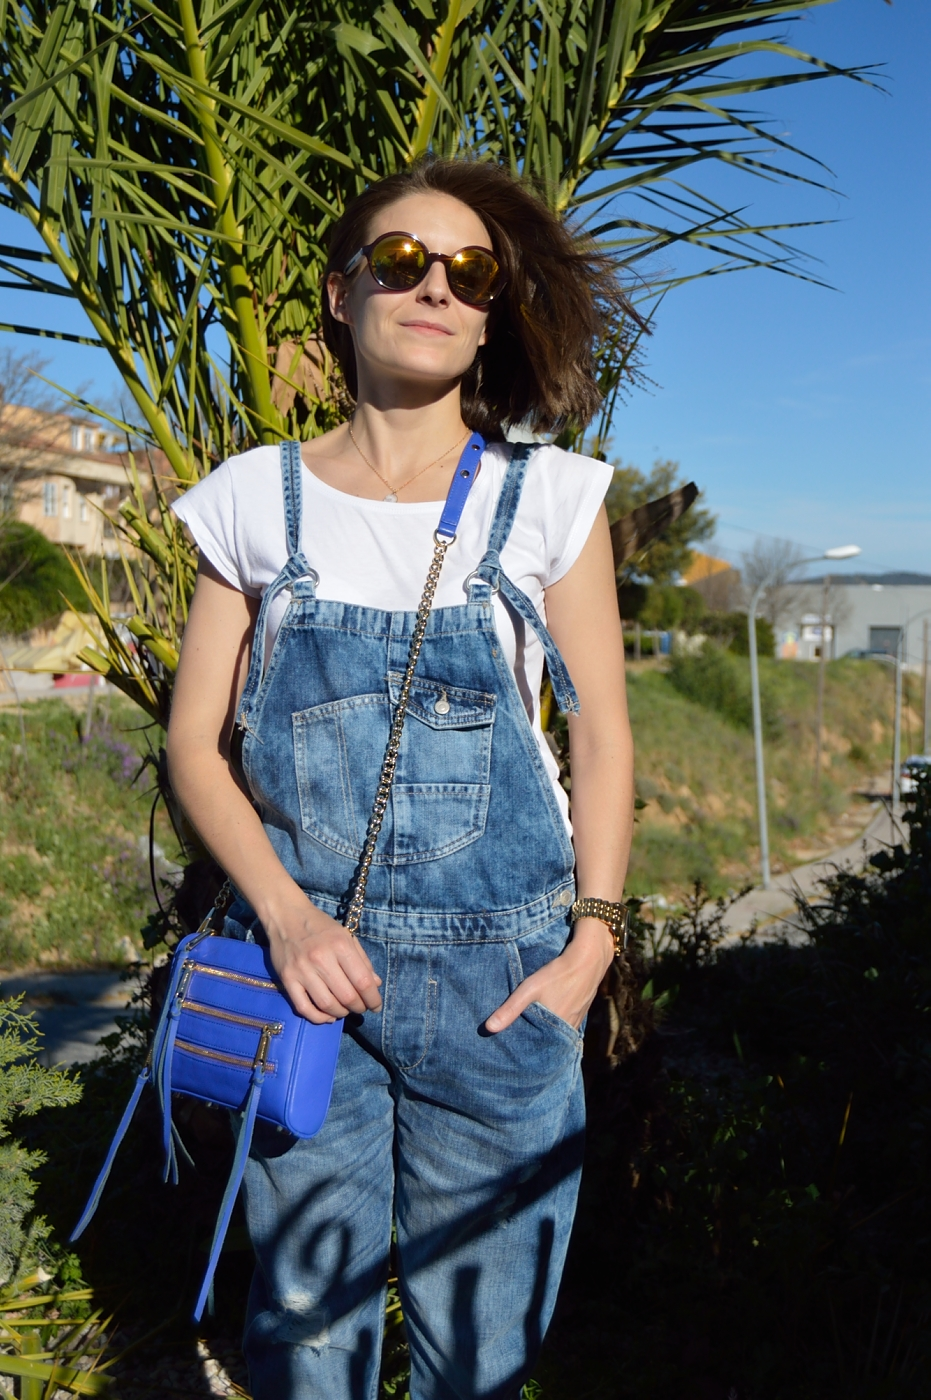 lara-vazquez-mad-lula-style-ootd-fashion-look-outfit-blue